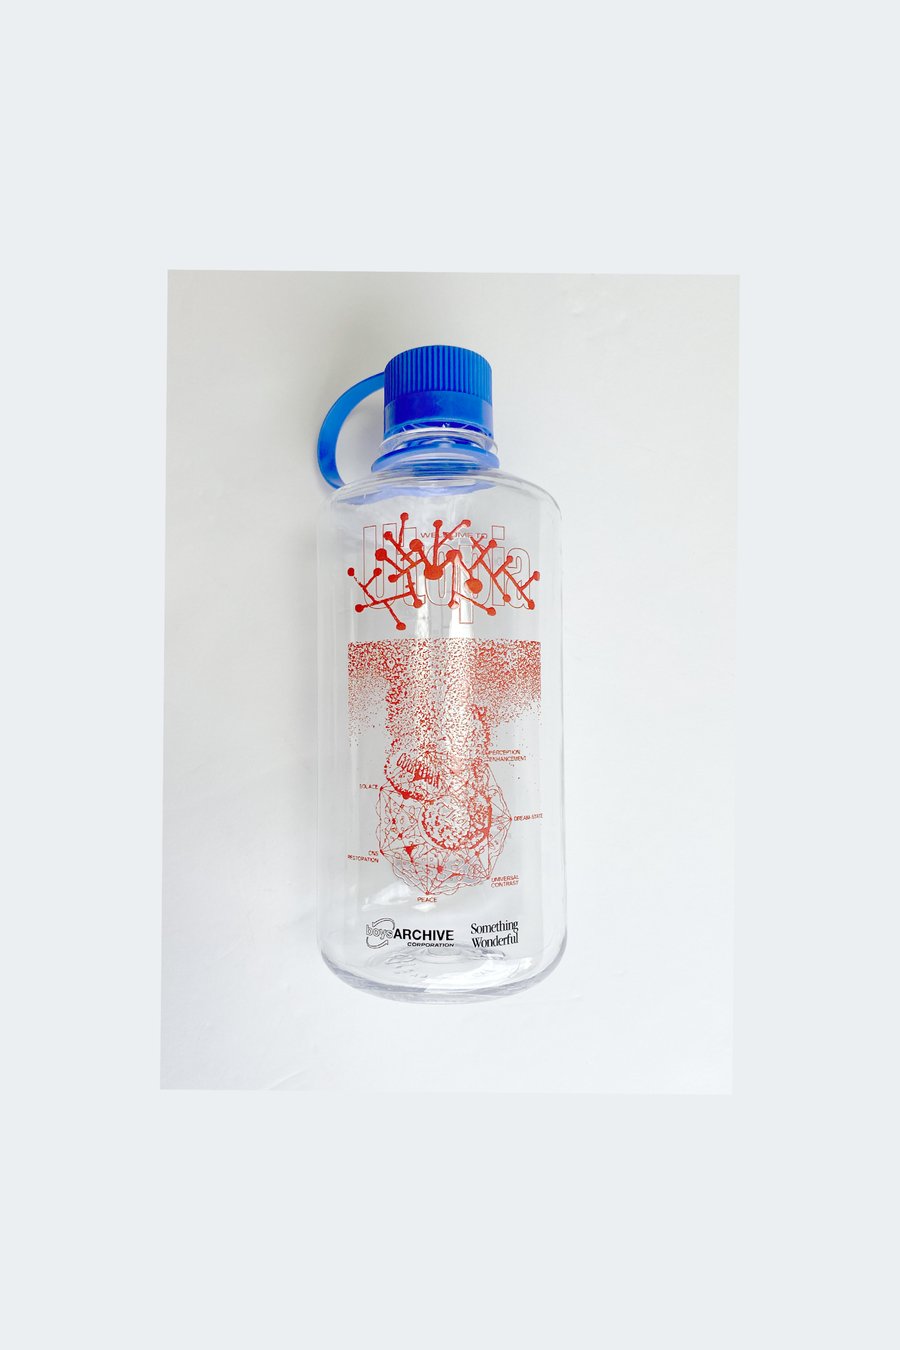 BOYS ARCHIVE X SOMETHING WONDERFUL UTOPIA - NALGENE WATER BOTTLE